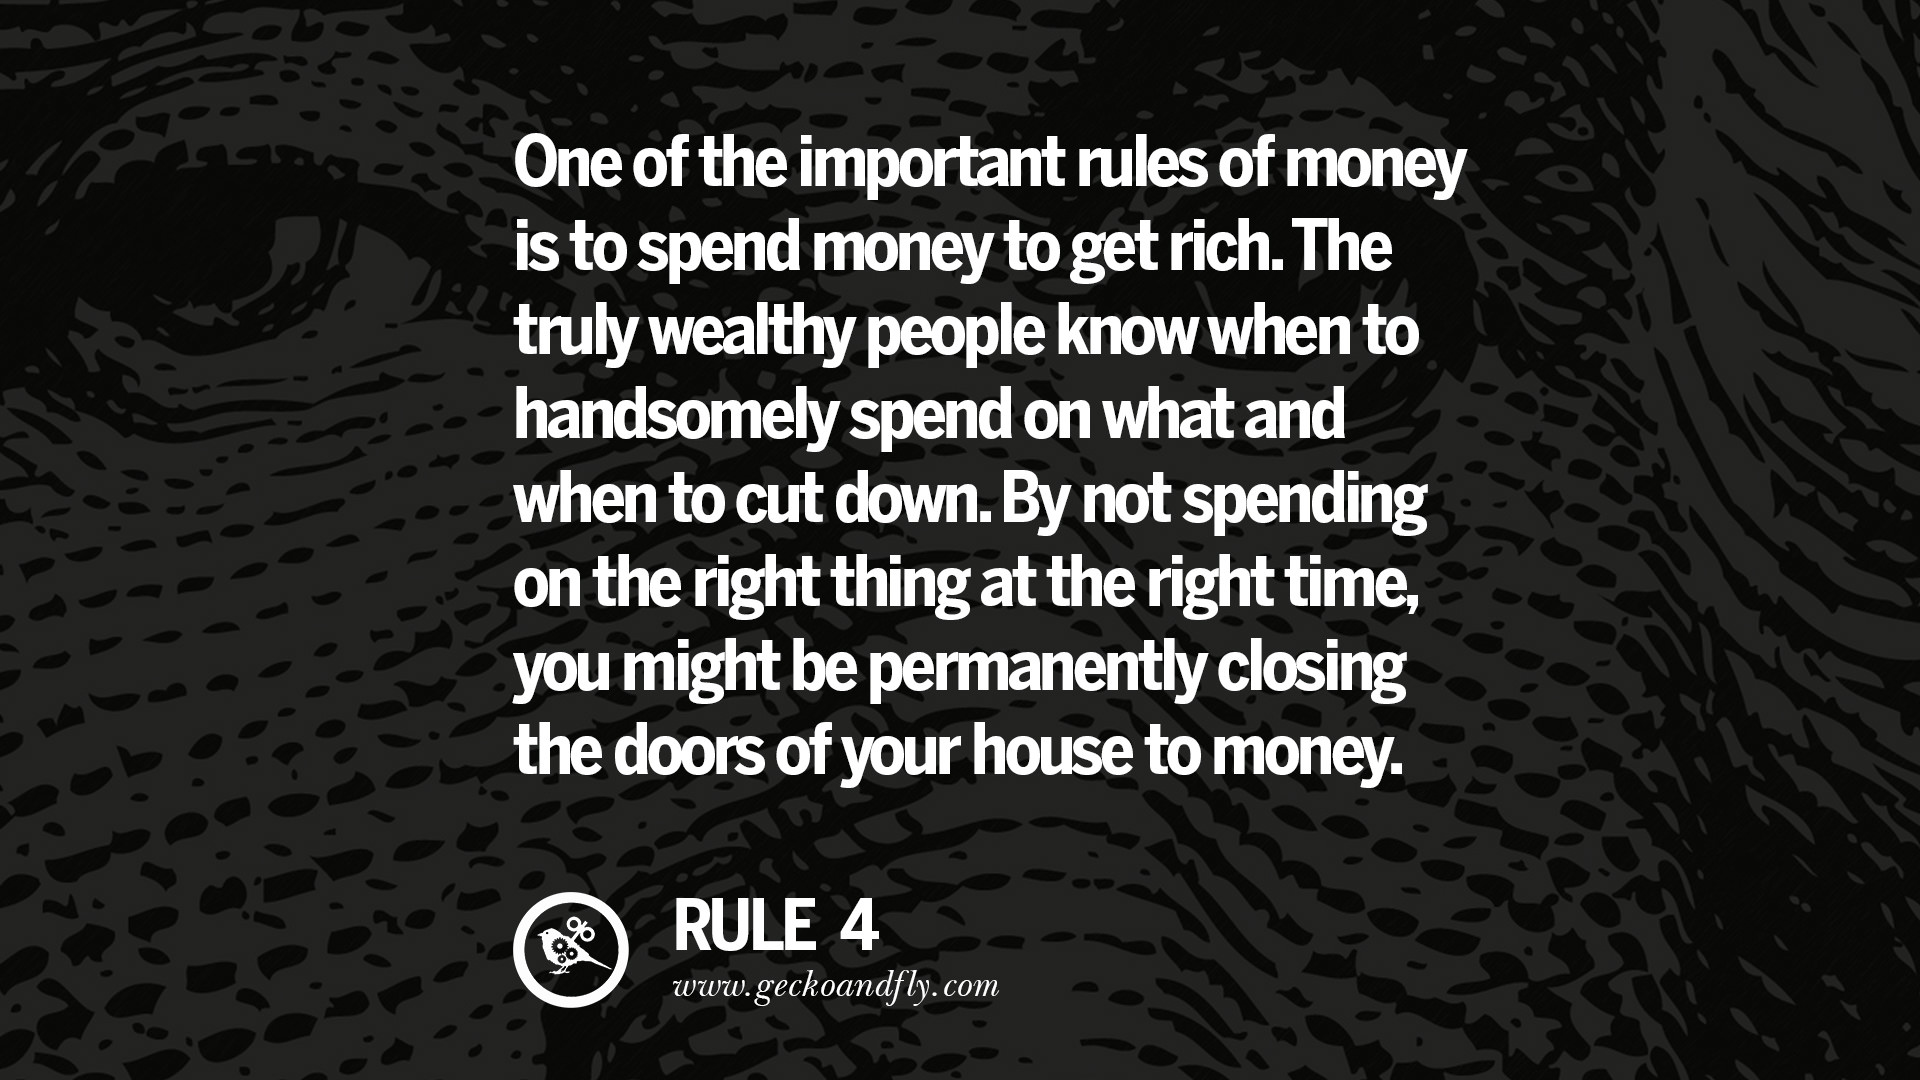 Get Money Quotes Gorgeous 10 Golden Rules On Money & 20 Inspiring Quotes About Money